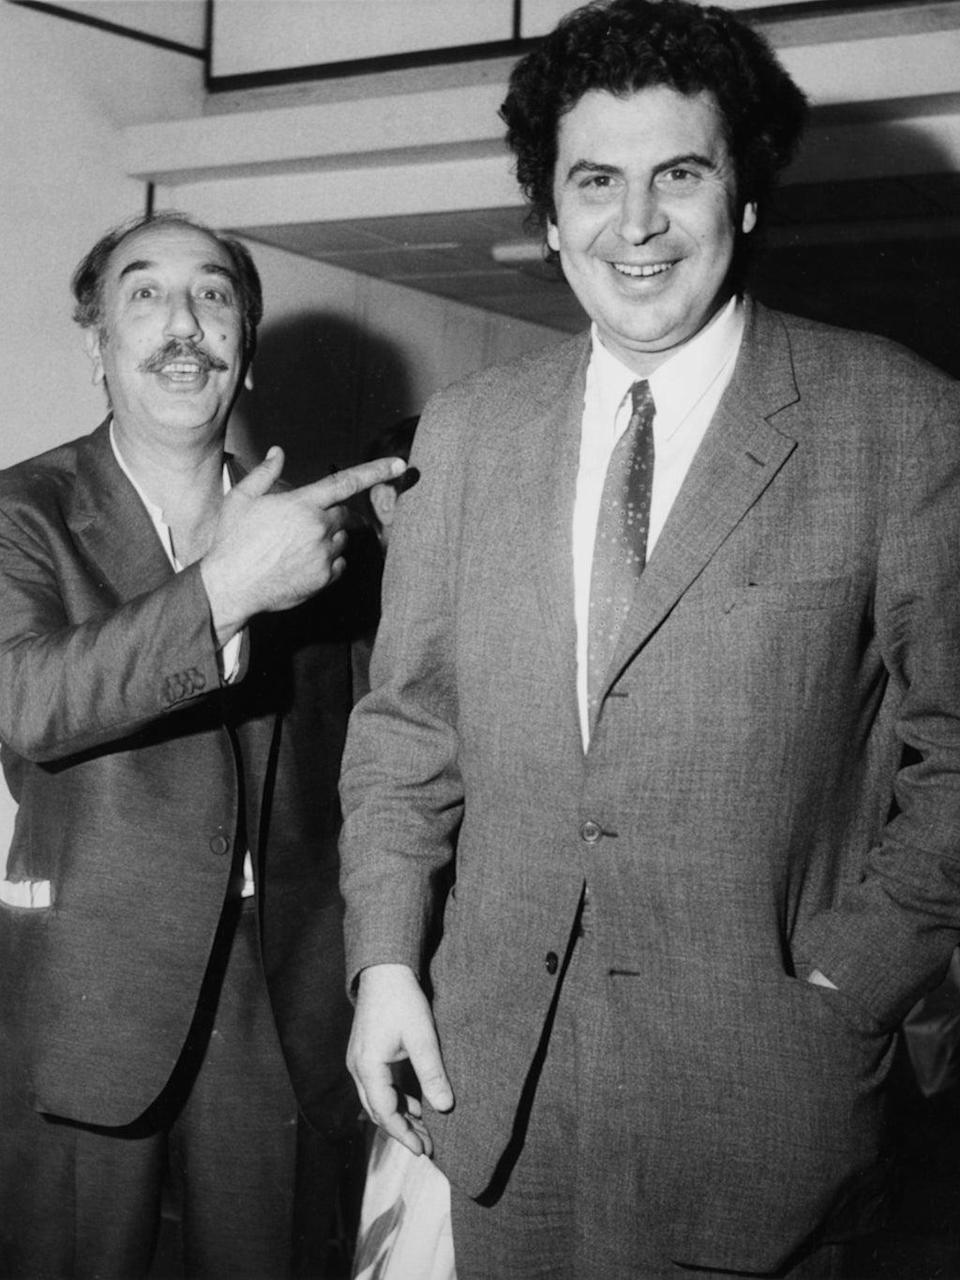 Theodorakis (right) arrives in the UK in 1970 (Getty)